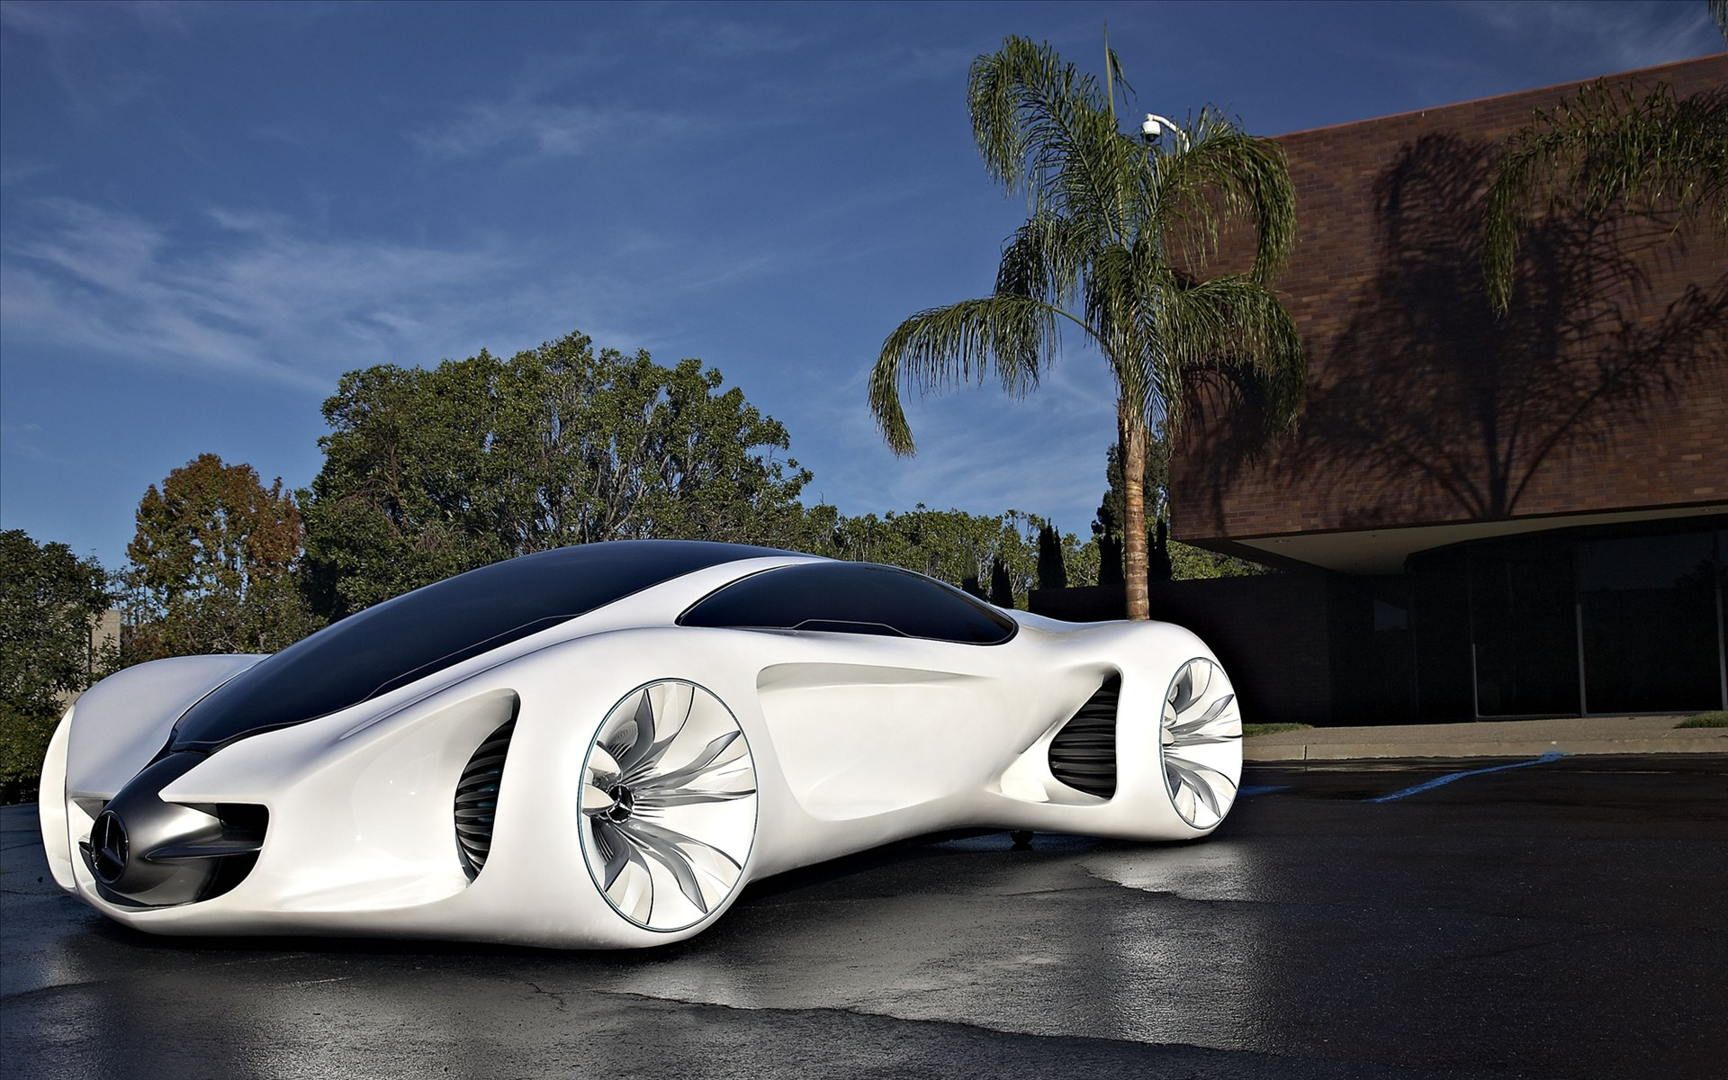 Concept car magazine cool car wallpapers - Here S The Concept Of The Future Mercedes Definitely See The 2010 Mercedes Benz Biome Concept